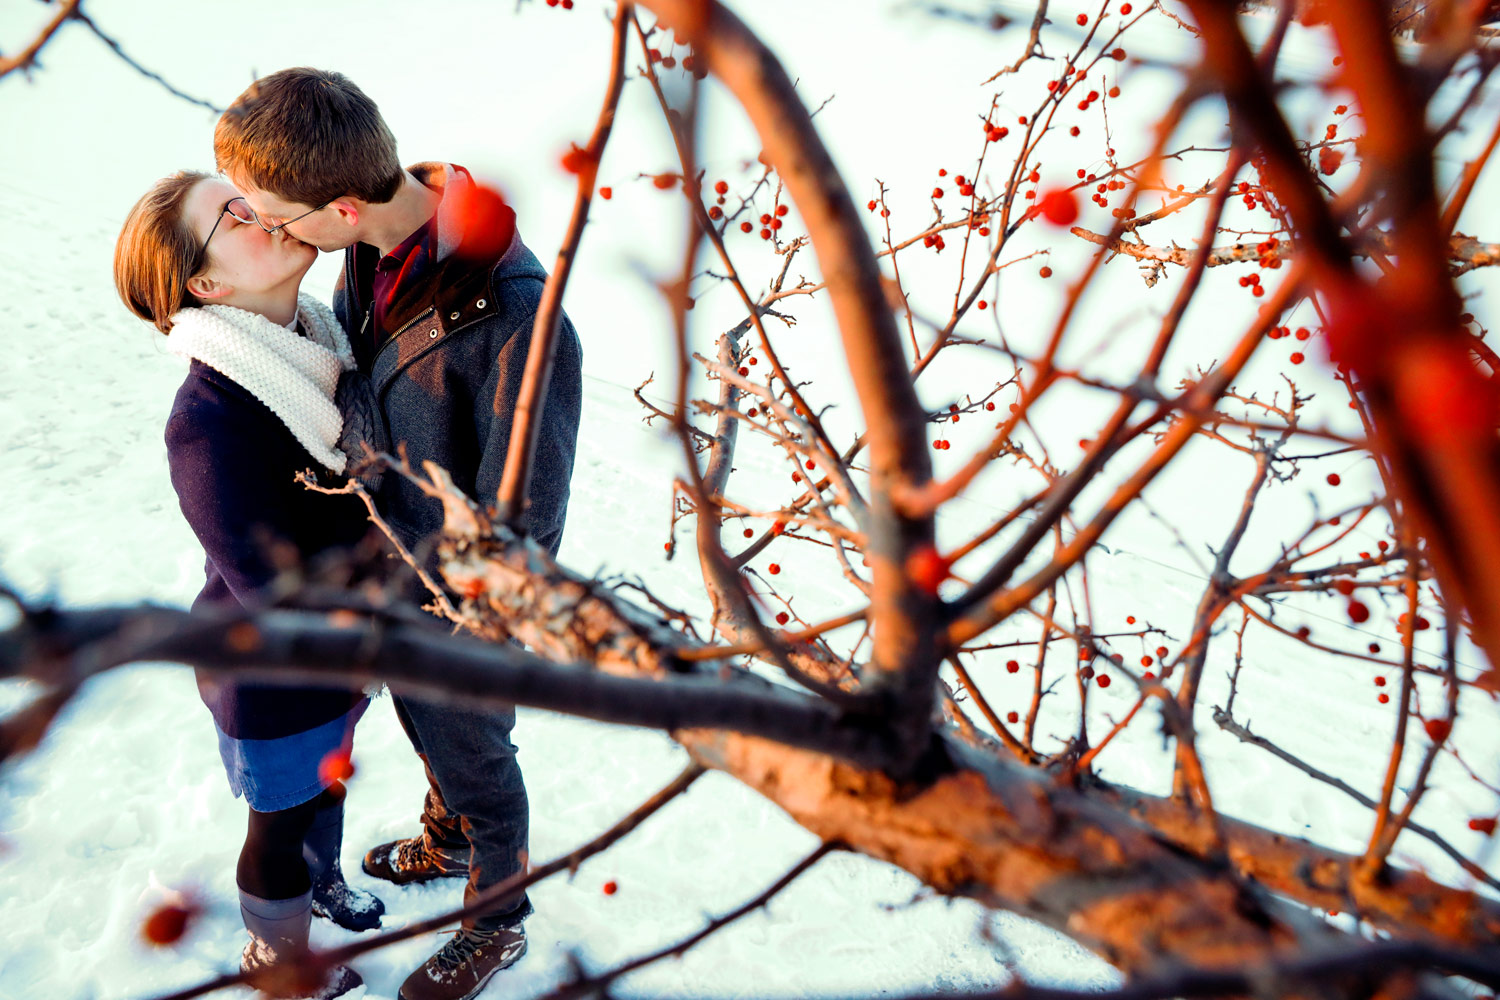 tenney-park-madison-wi-engagement-session-snow-winter-lake-mendota-sunset-ruthie-hauge-photography.jpg